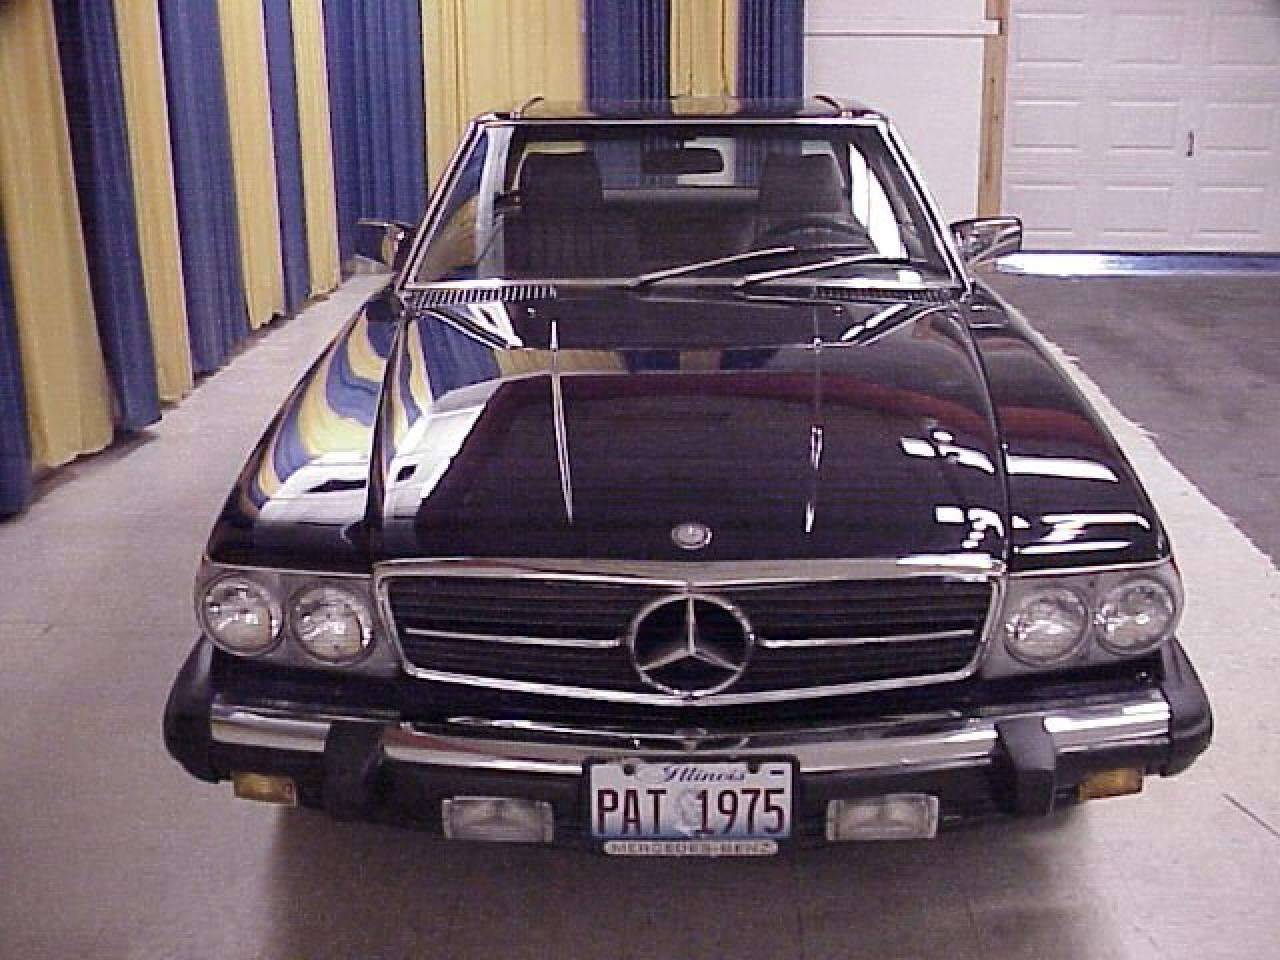 1989 mercedes benz 560 sl st louis missouri stl 2590 for Plaza mercedes benz st louis